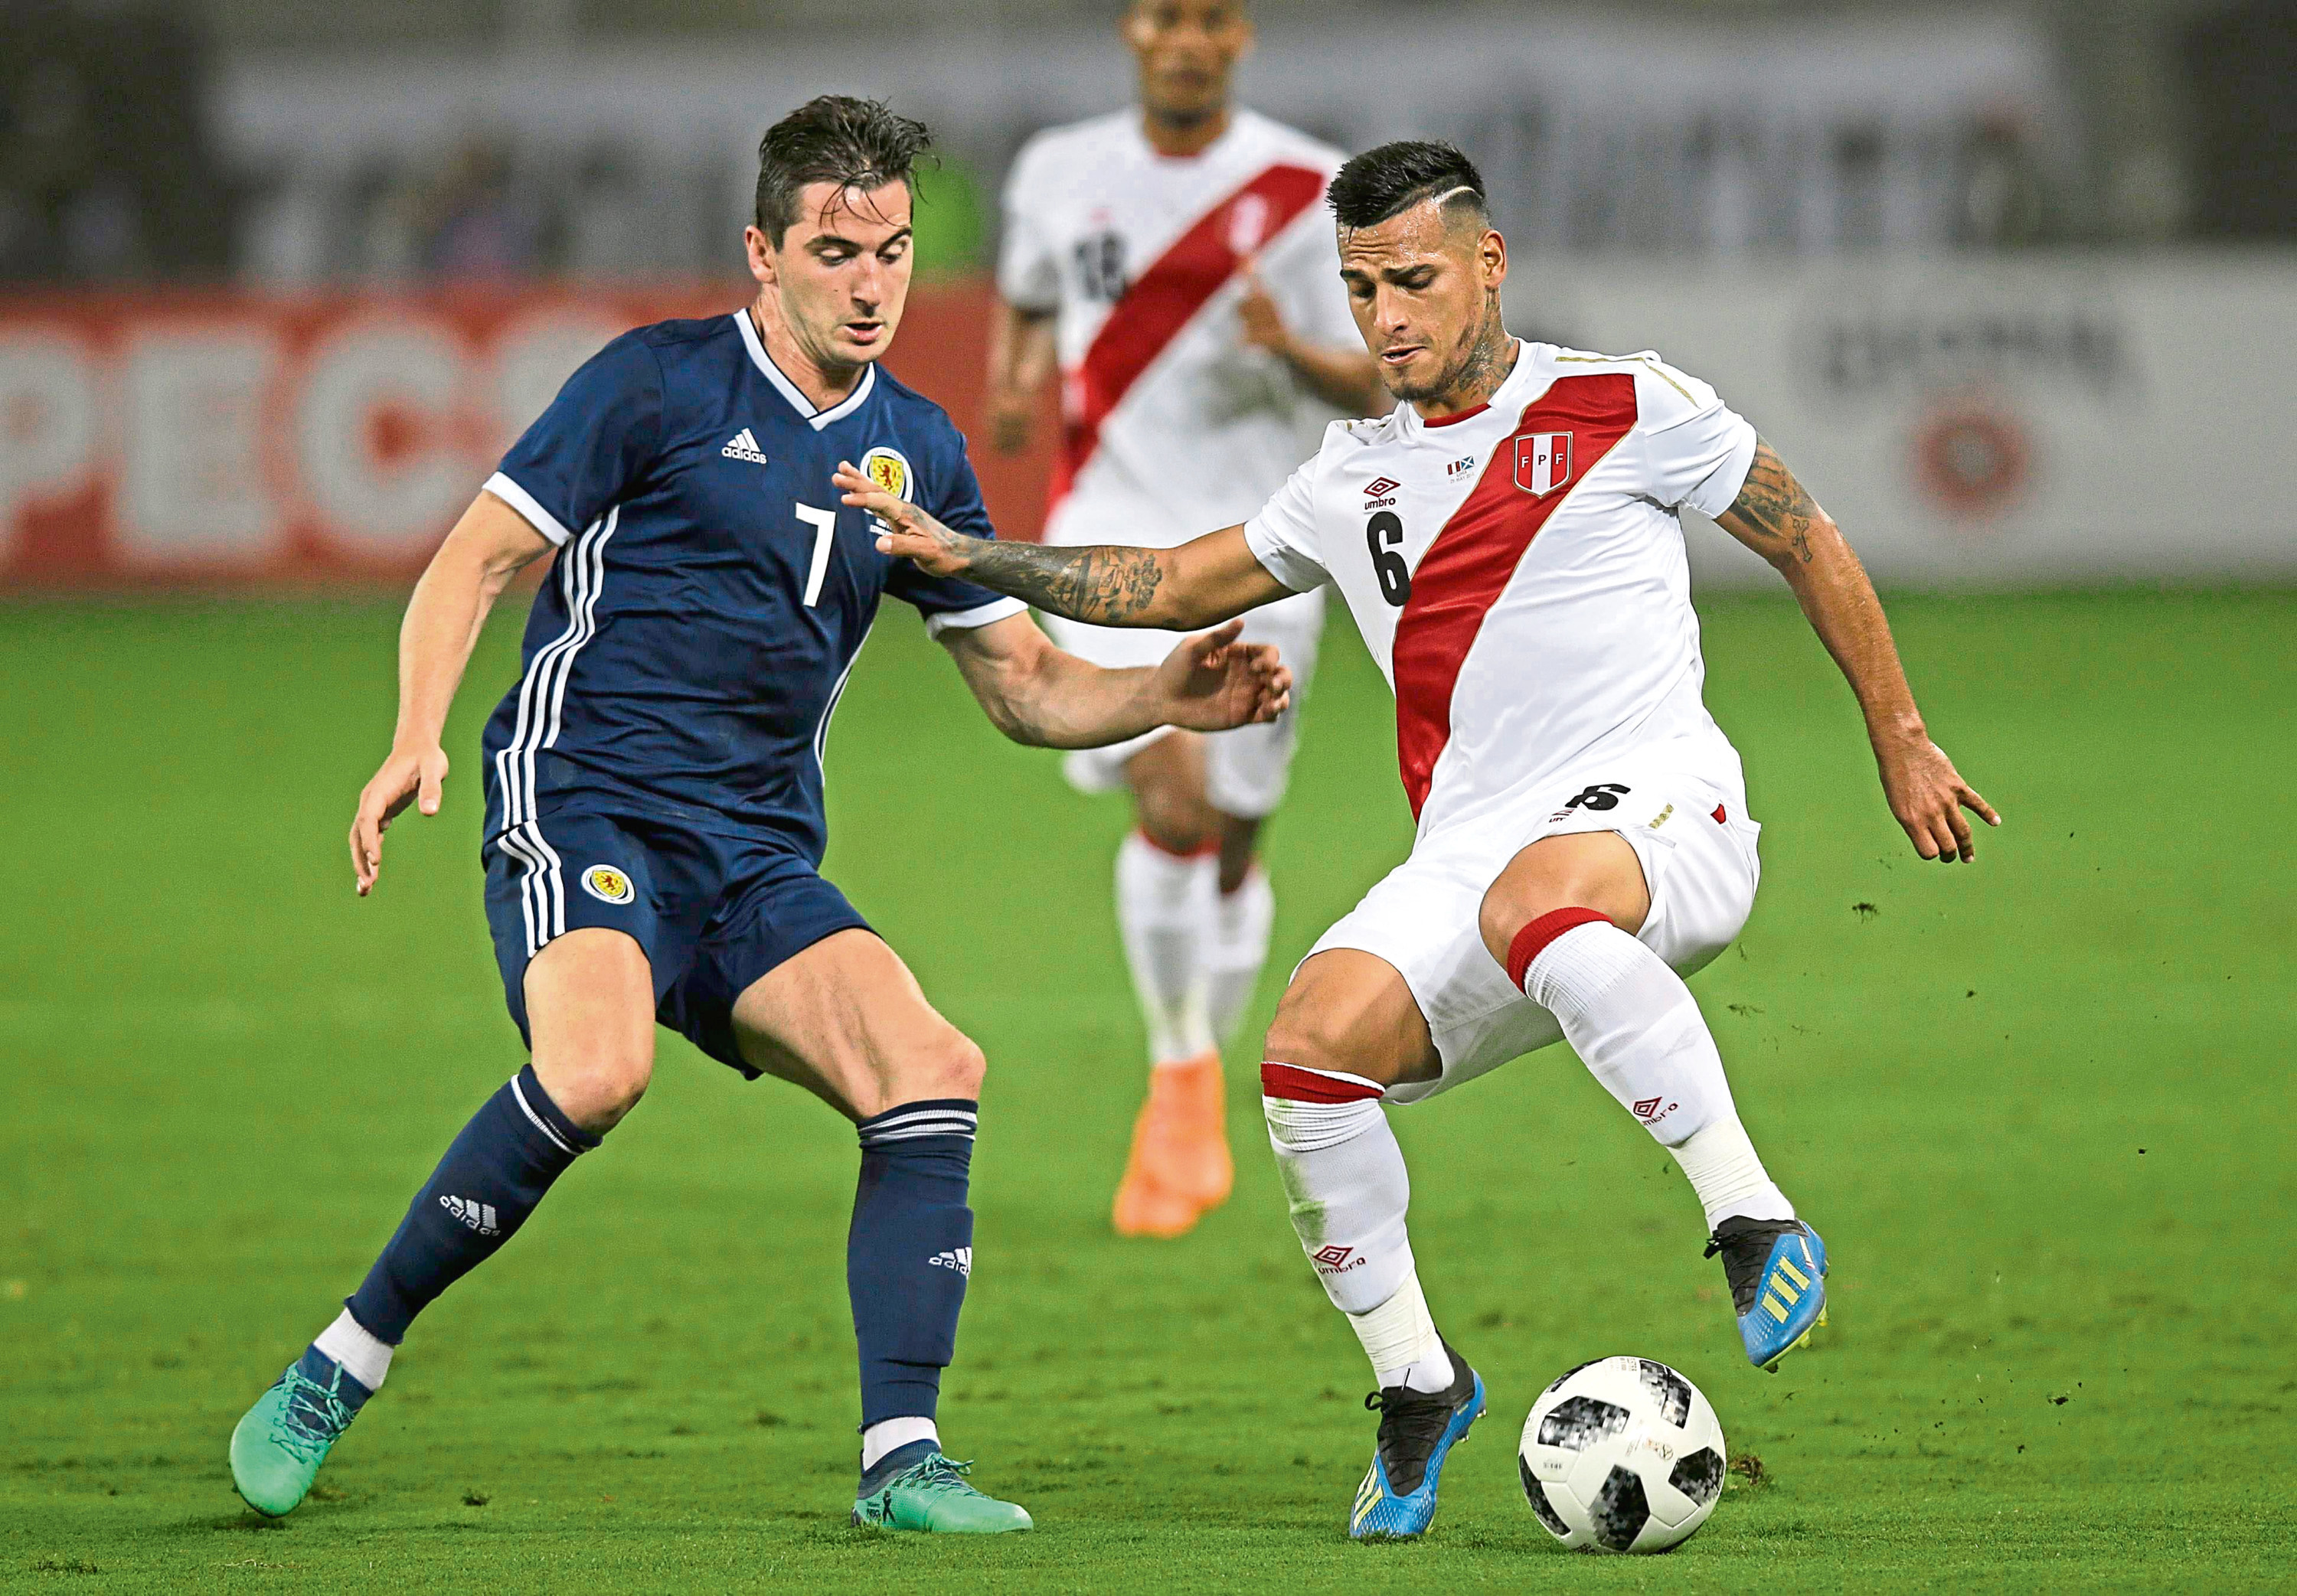 Peru's Miguel Trauco, right, fights for the ball with Scotland's Kenny McLean during a friendly soccer match in Lima, Peru, Tuesday, May 29, 2018. (AP Photo/Martin Mejia)